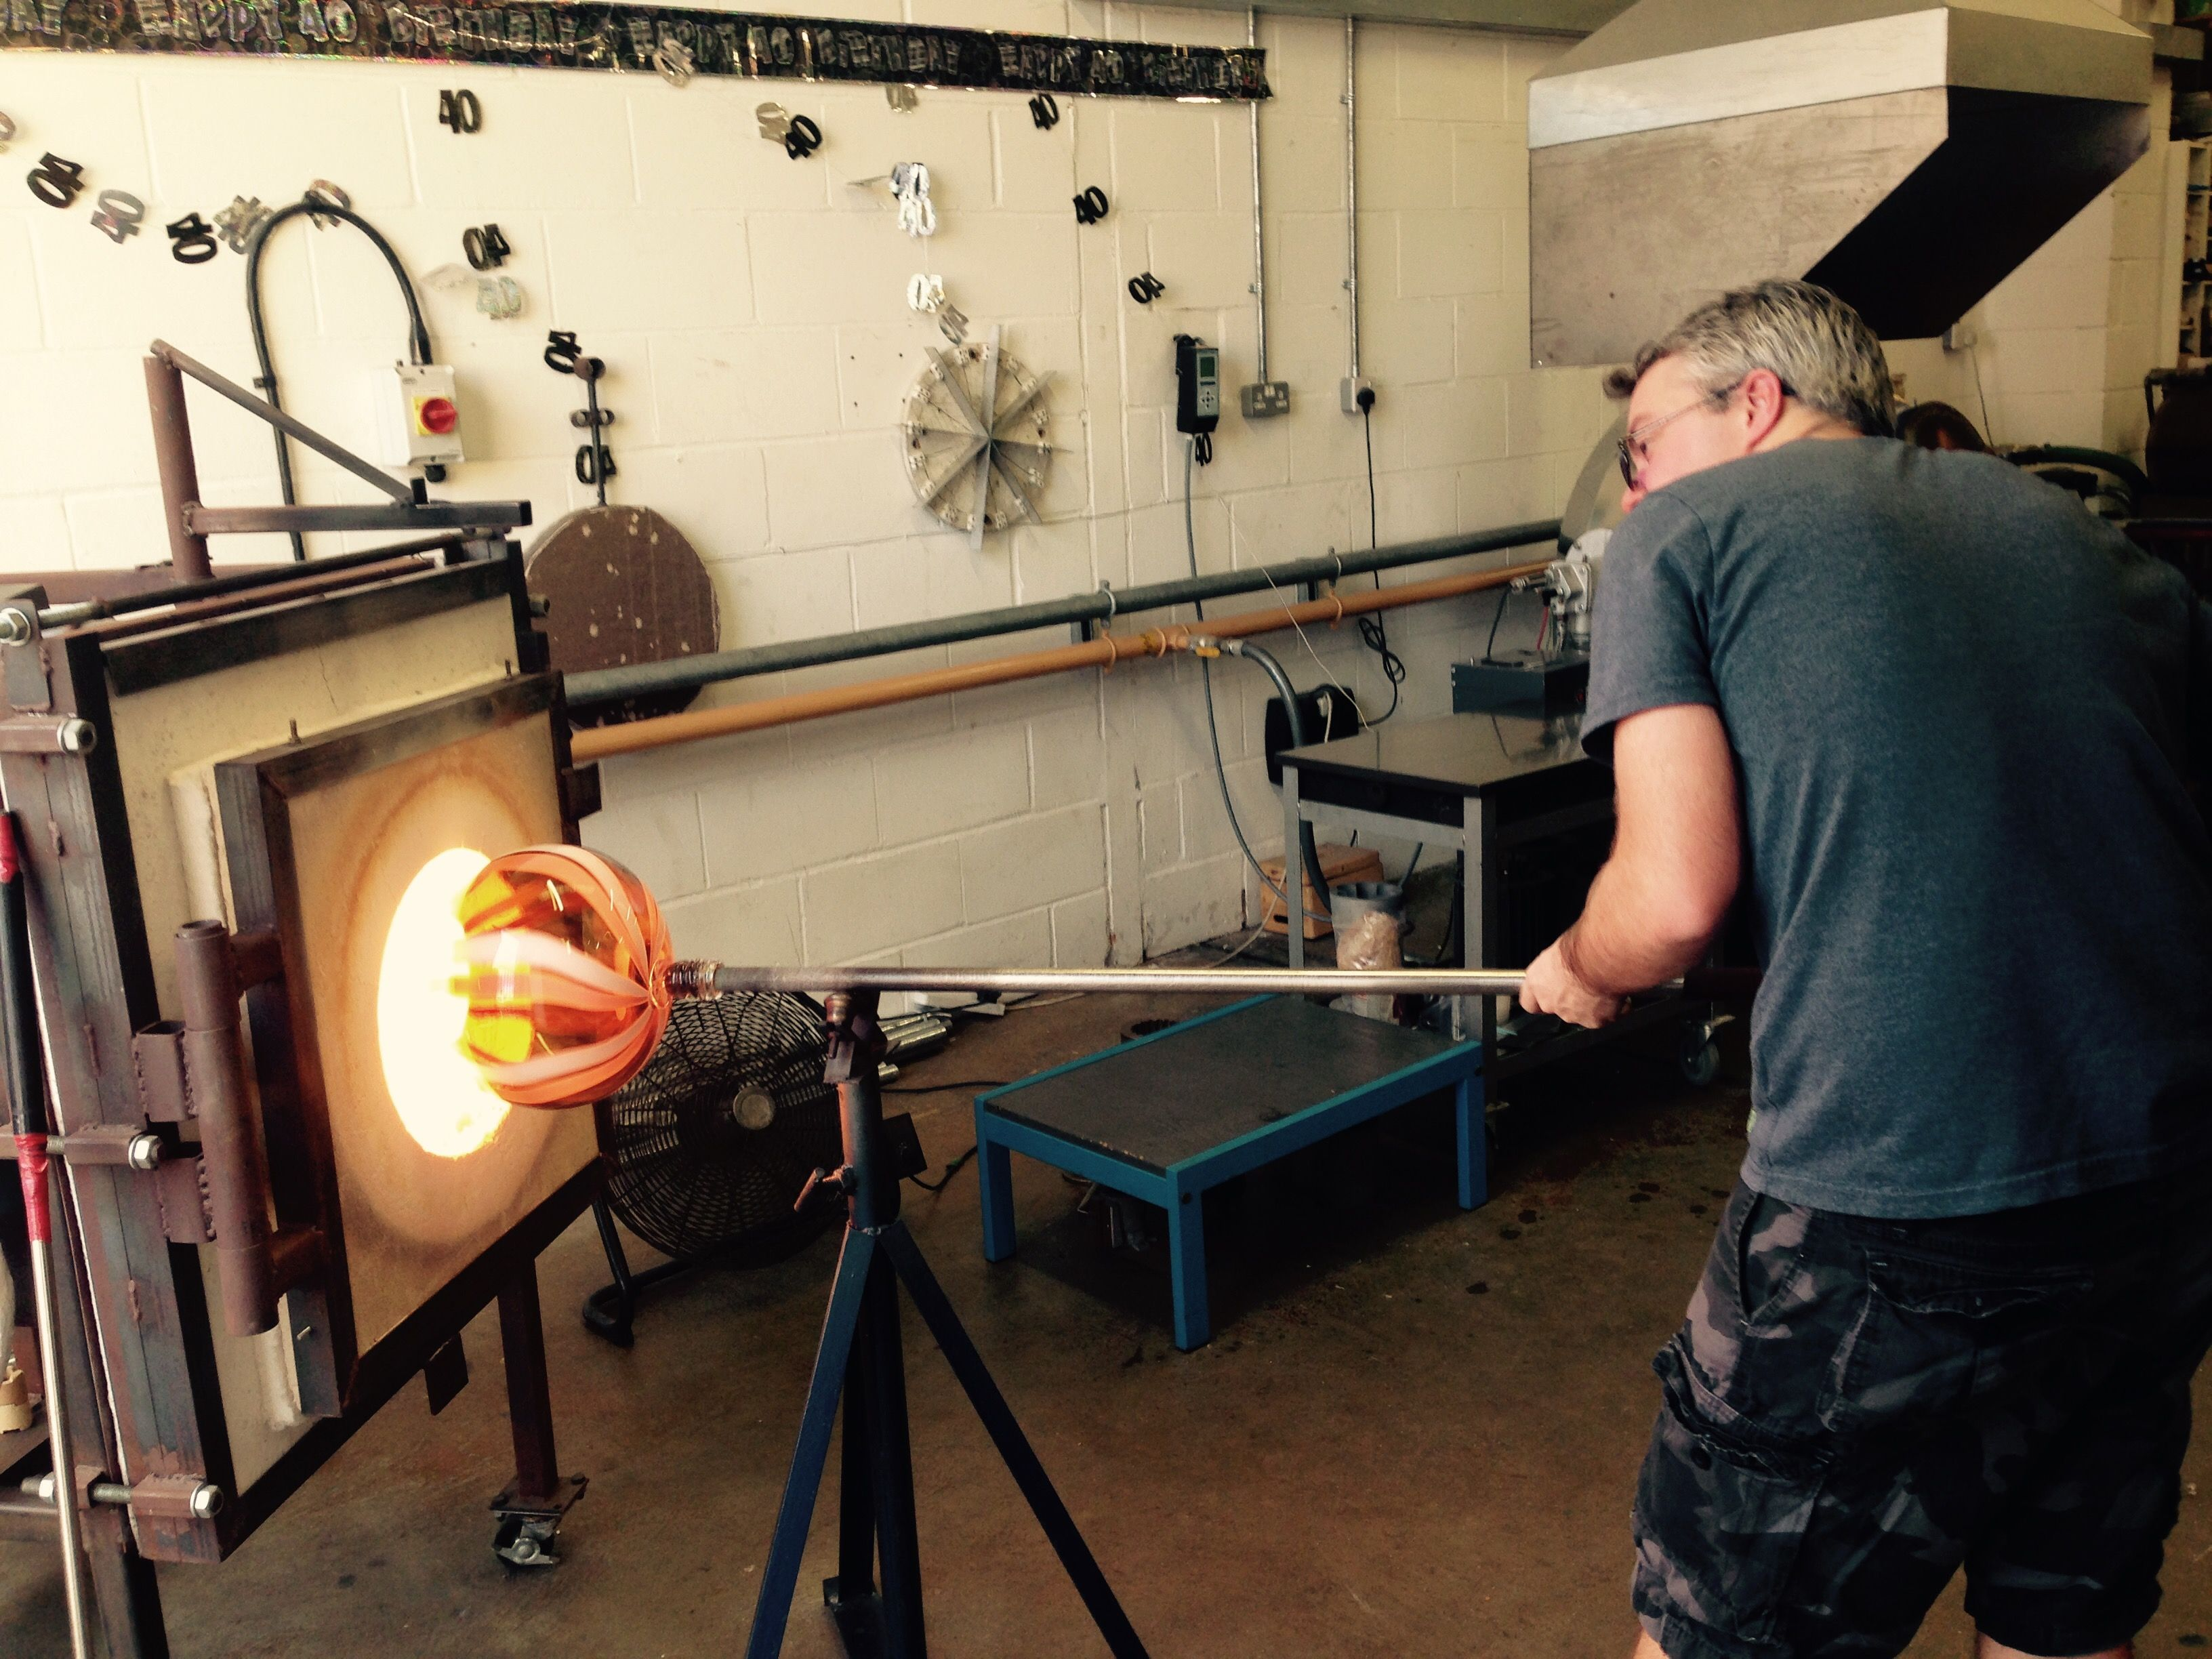 Glass blowing with cane work